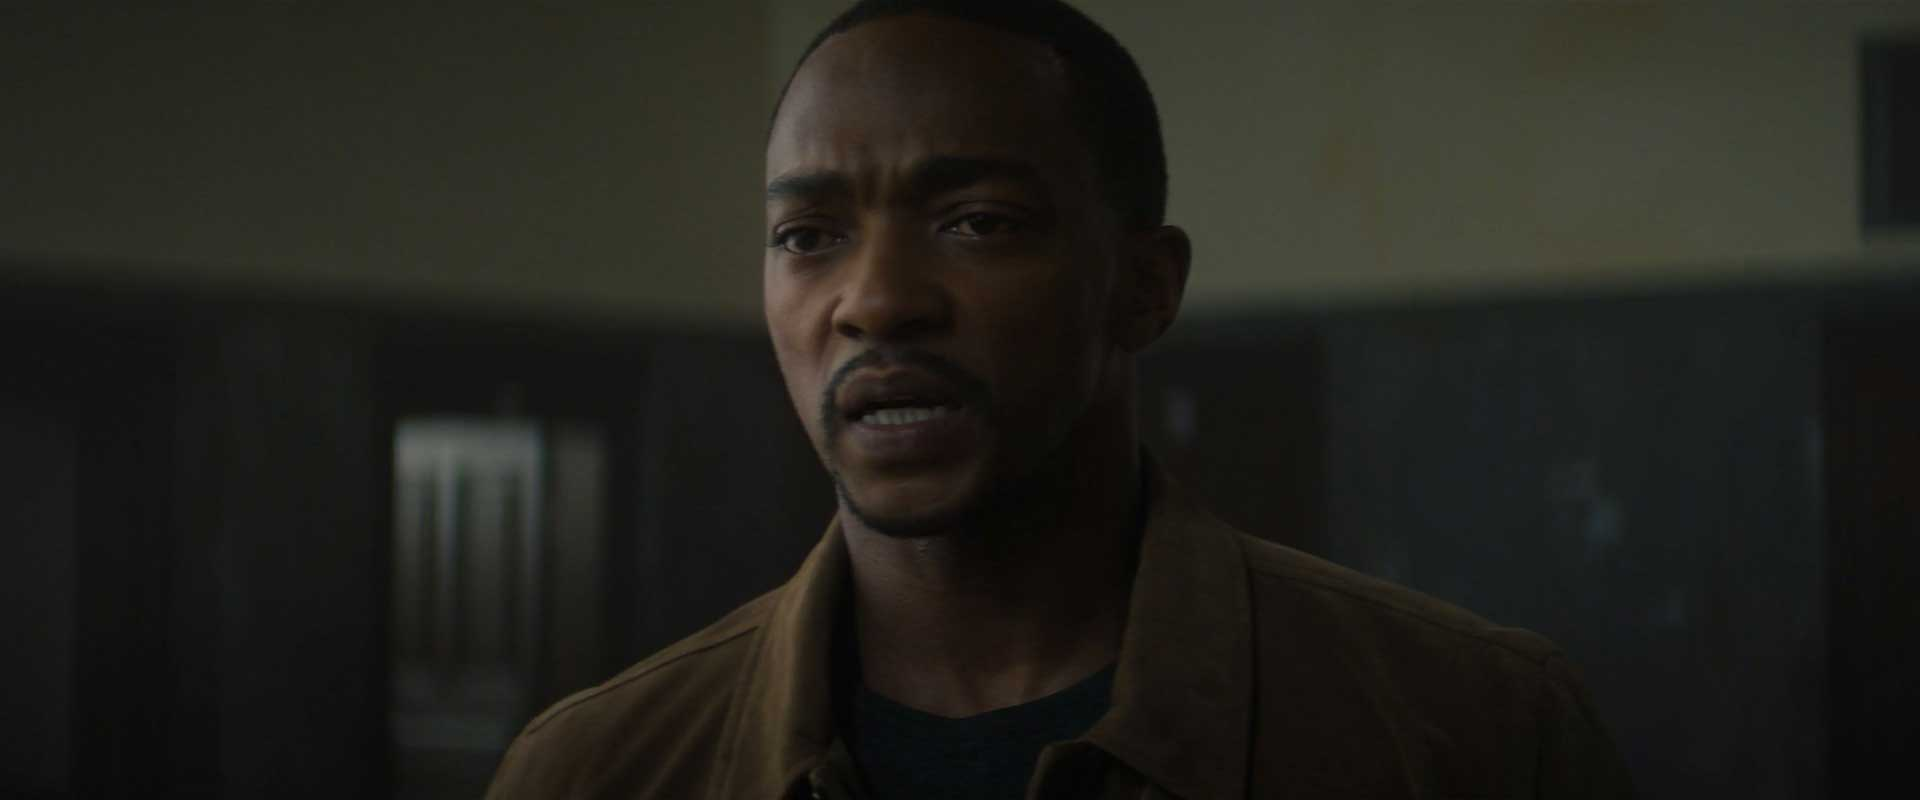 The Falcon and the Winter Soldier Episode 4 Still 2